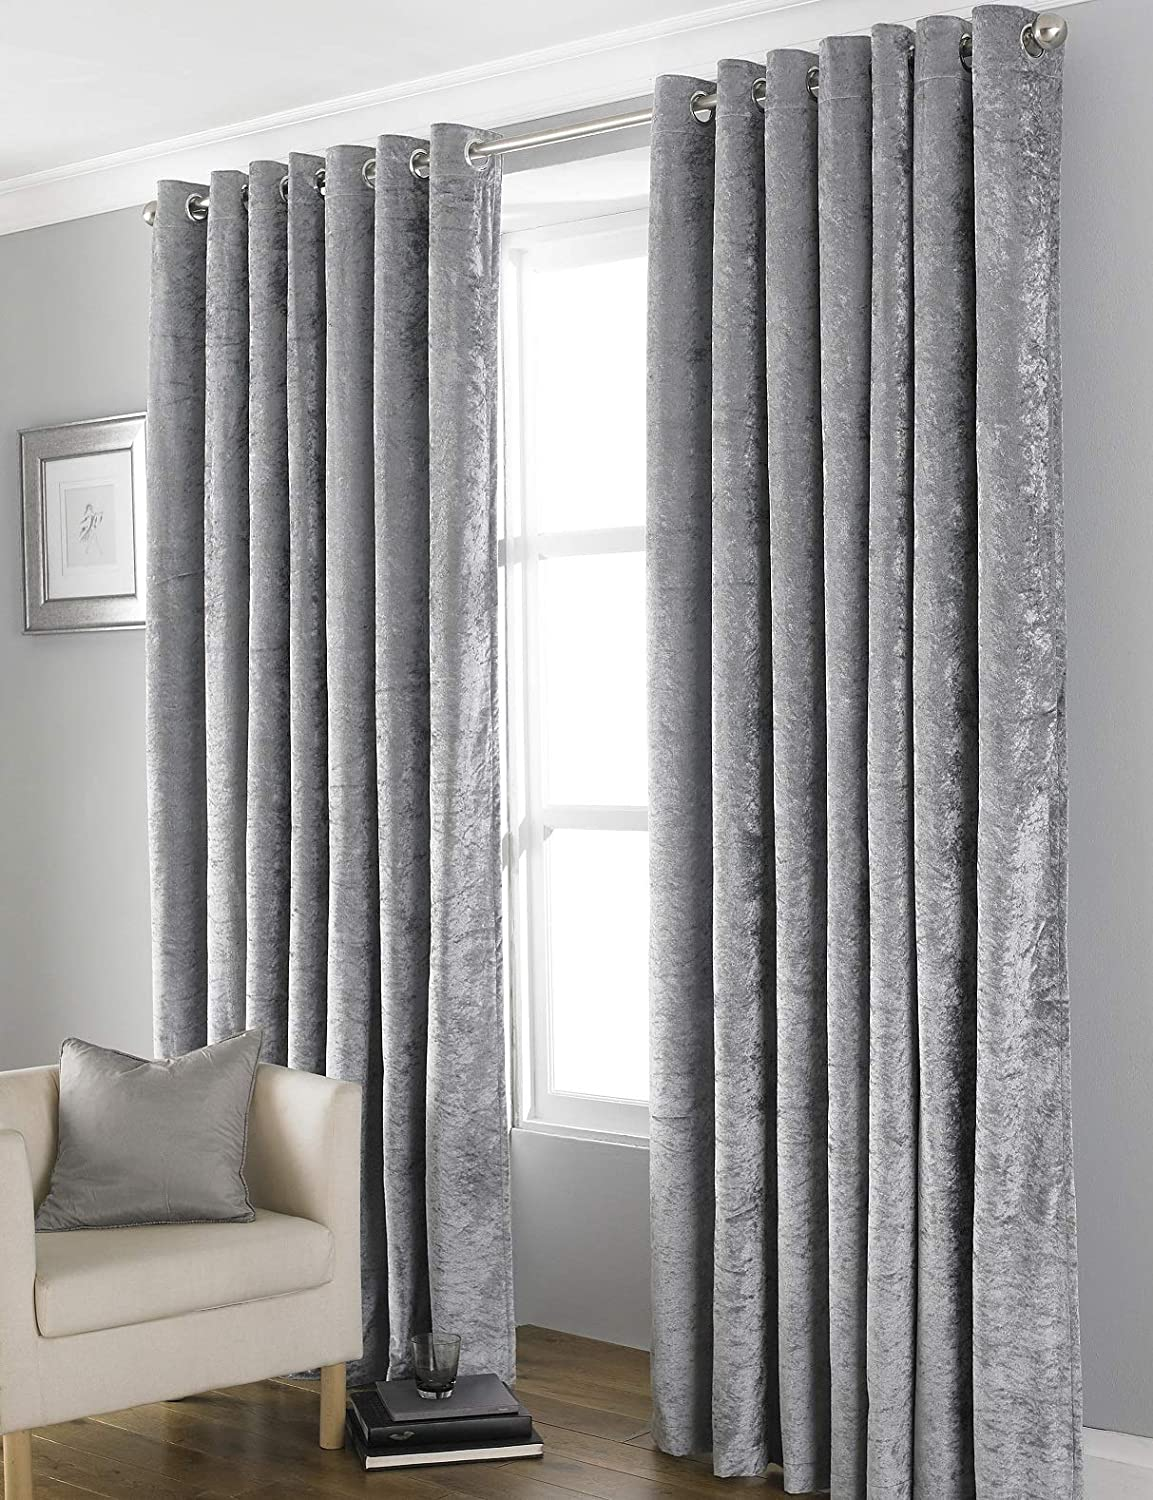 """COUNTRY CLUB Bliss Crushed Velvet Blackout Eyelet Fully Lined Thermal Curtains, Grey, 90 x 90 90 x 90"""" Grey"""